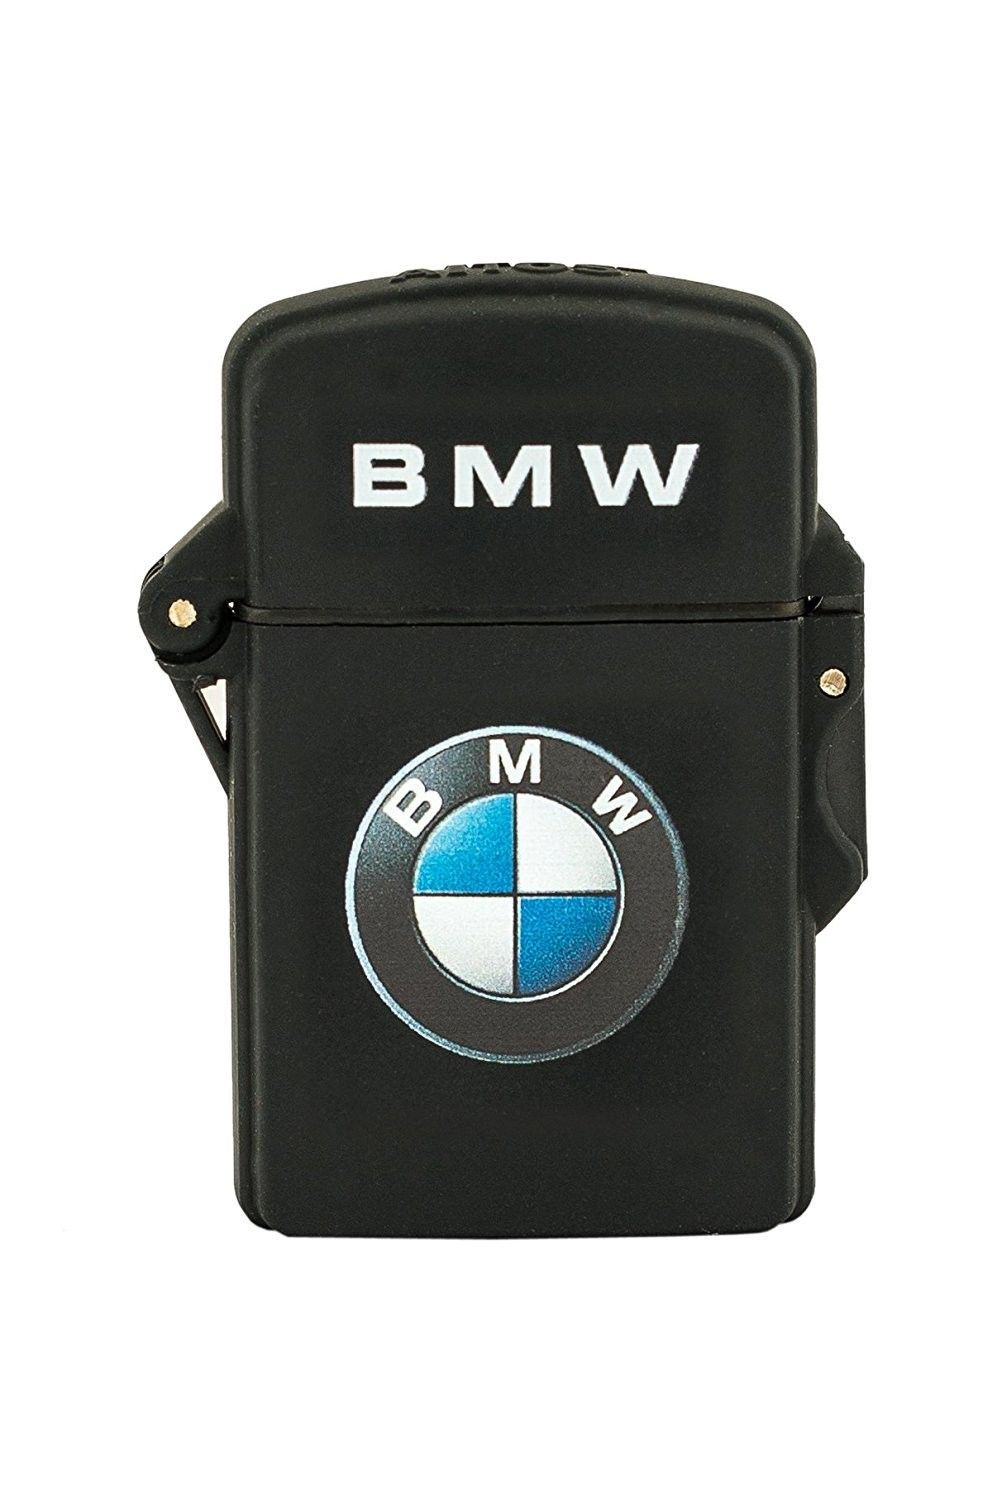 Bmw Lighter Lighters Cigar Lighters Lighter Zippo